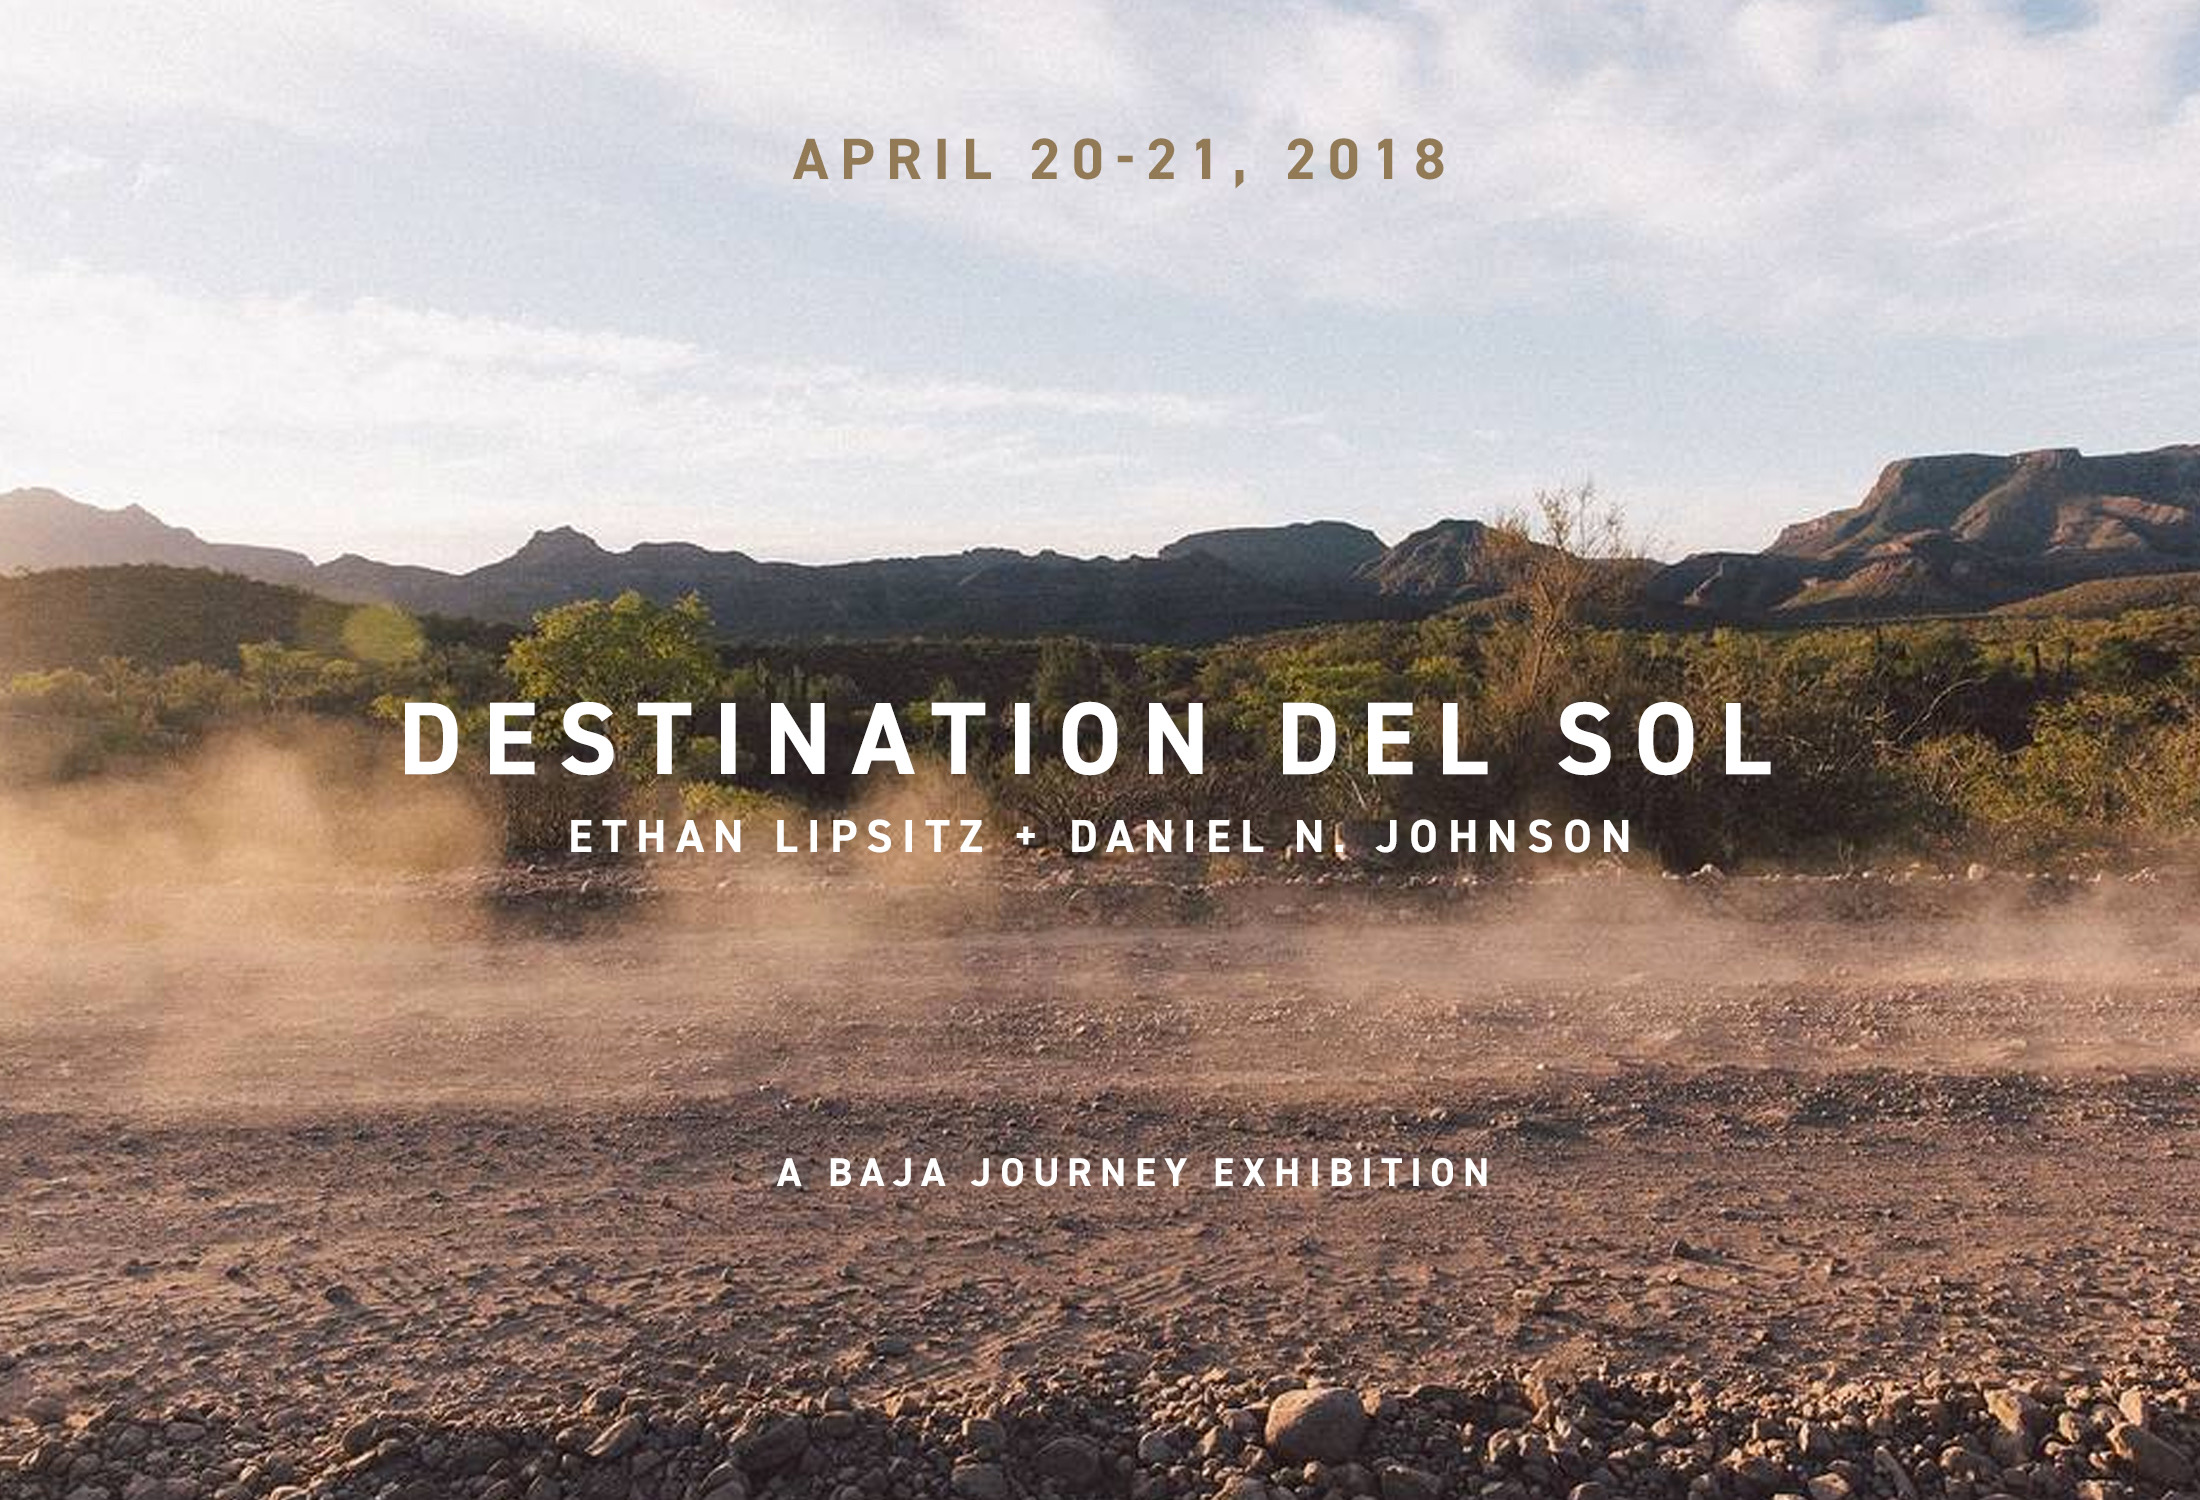 Check out the exhibition and more photos from the journey at  www.destinationdelsol.com